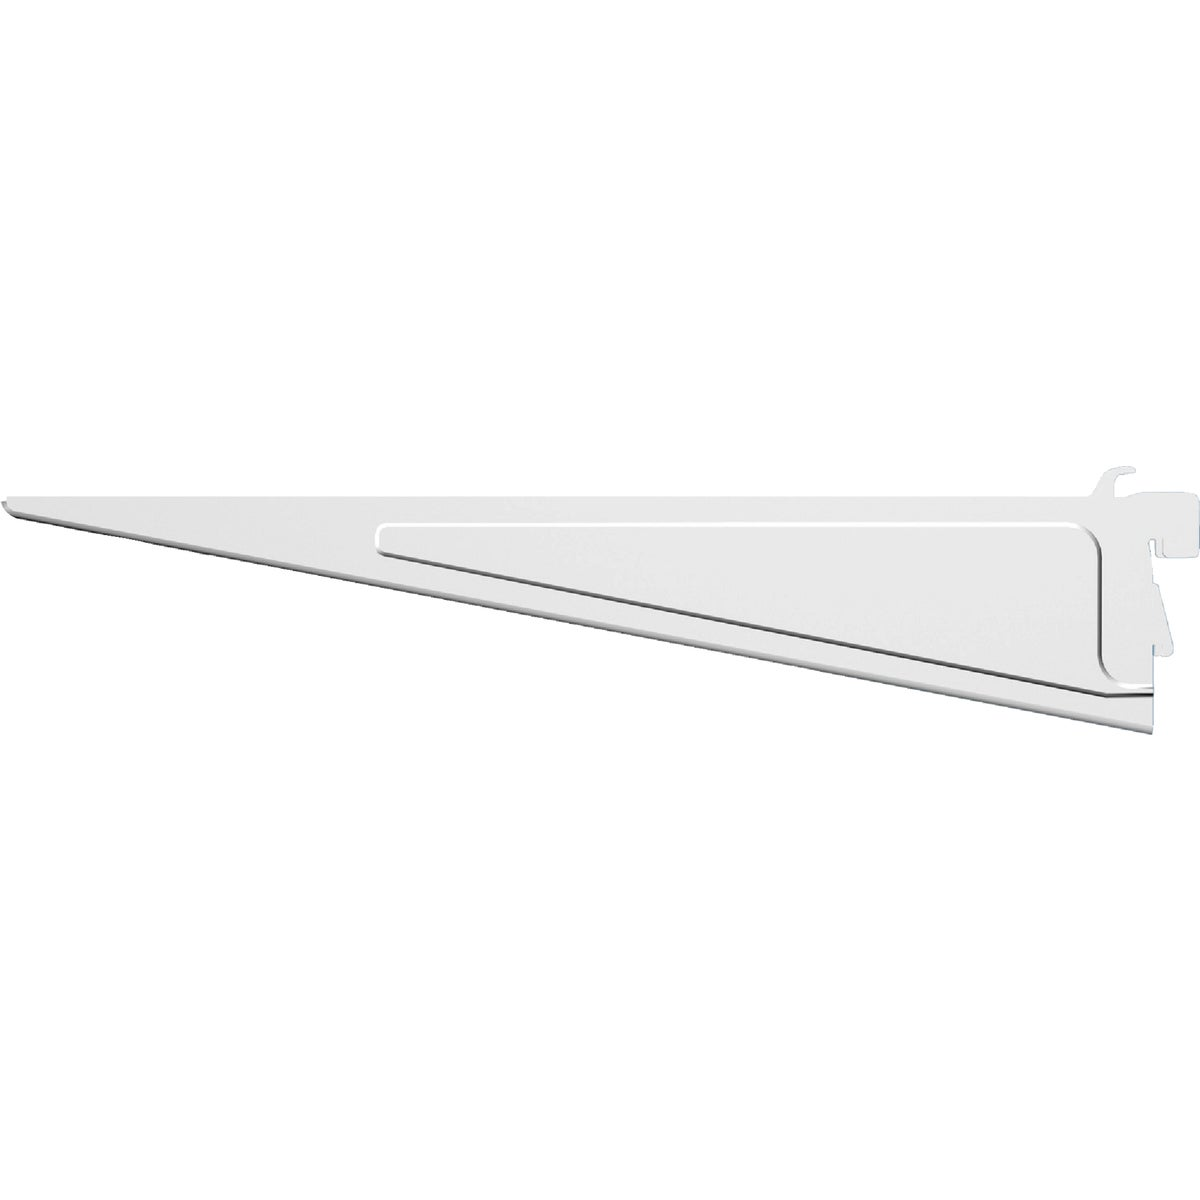 "12"" CLOSET SHELF BRACKET - 285300 by Closetmaid"